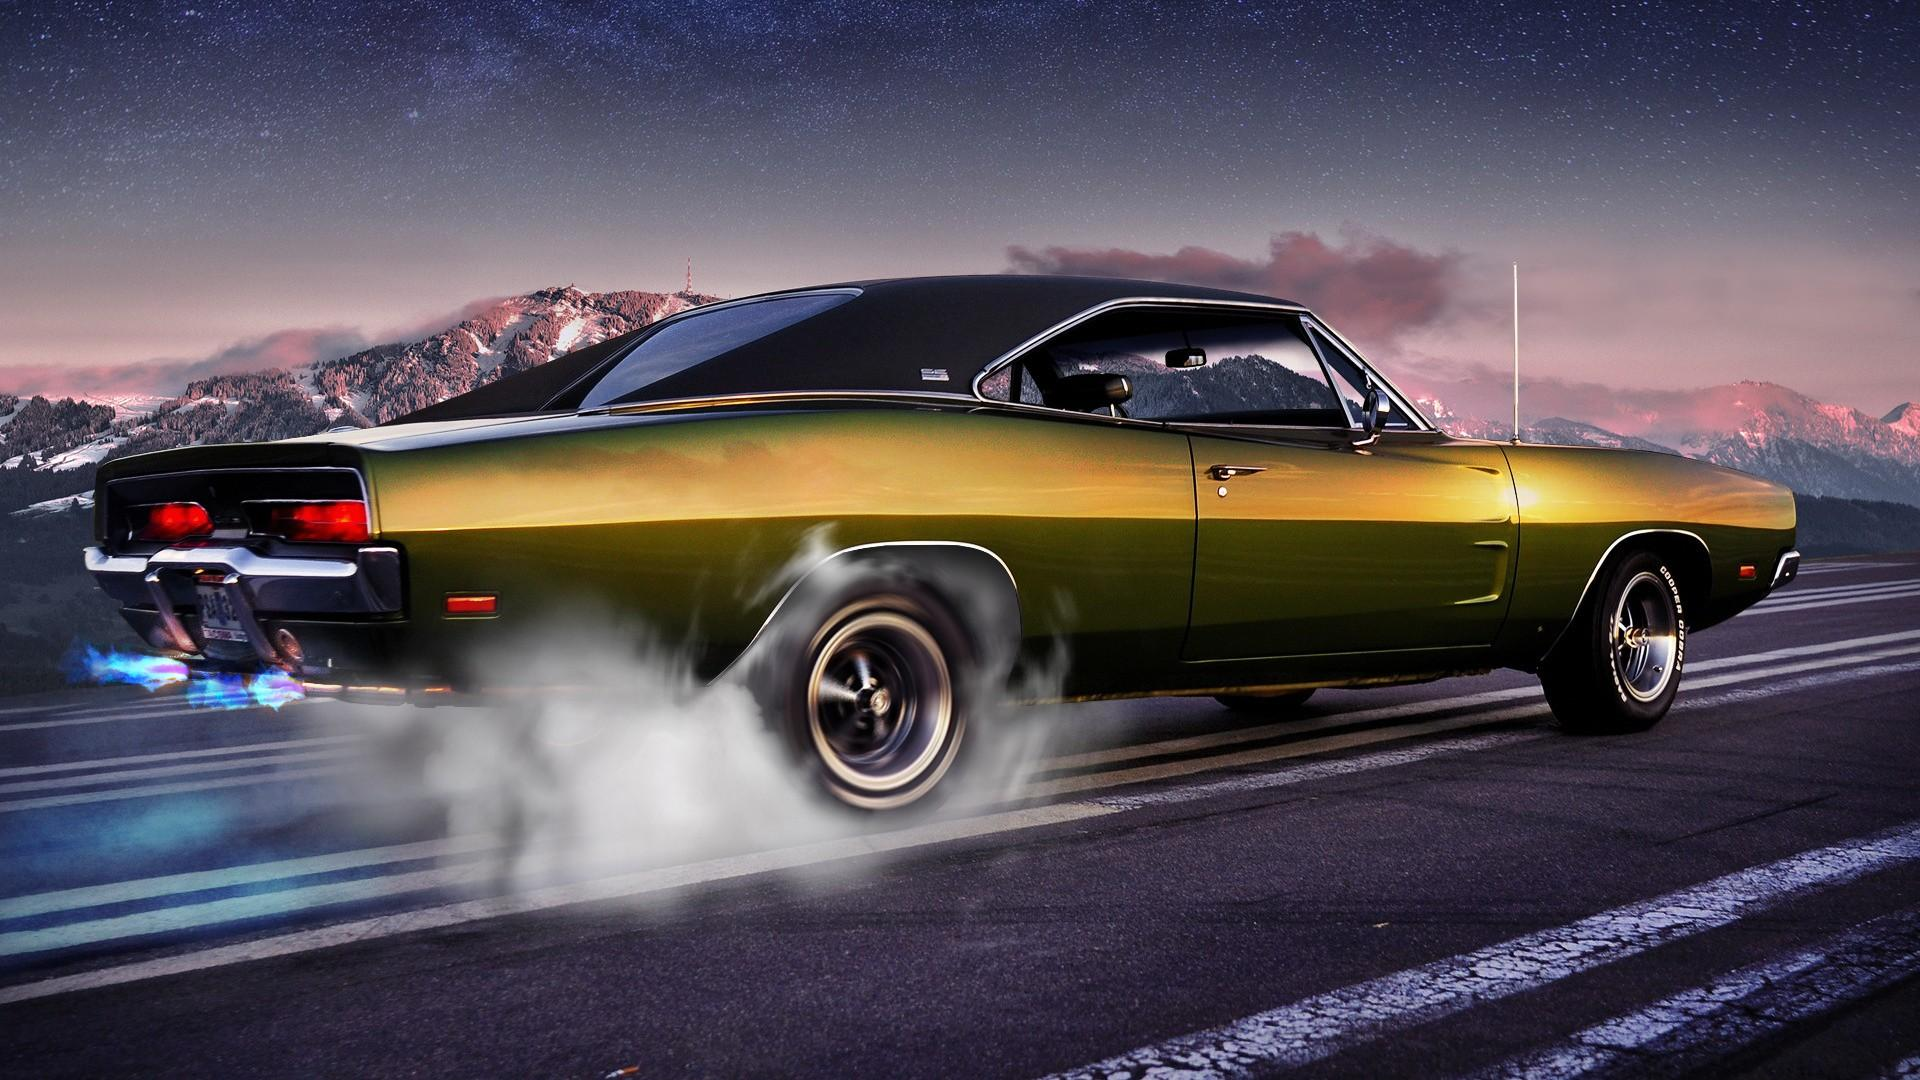 Old Muscle Cars Hd Wallpapers WallpaperSafari - Cool muscle cars